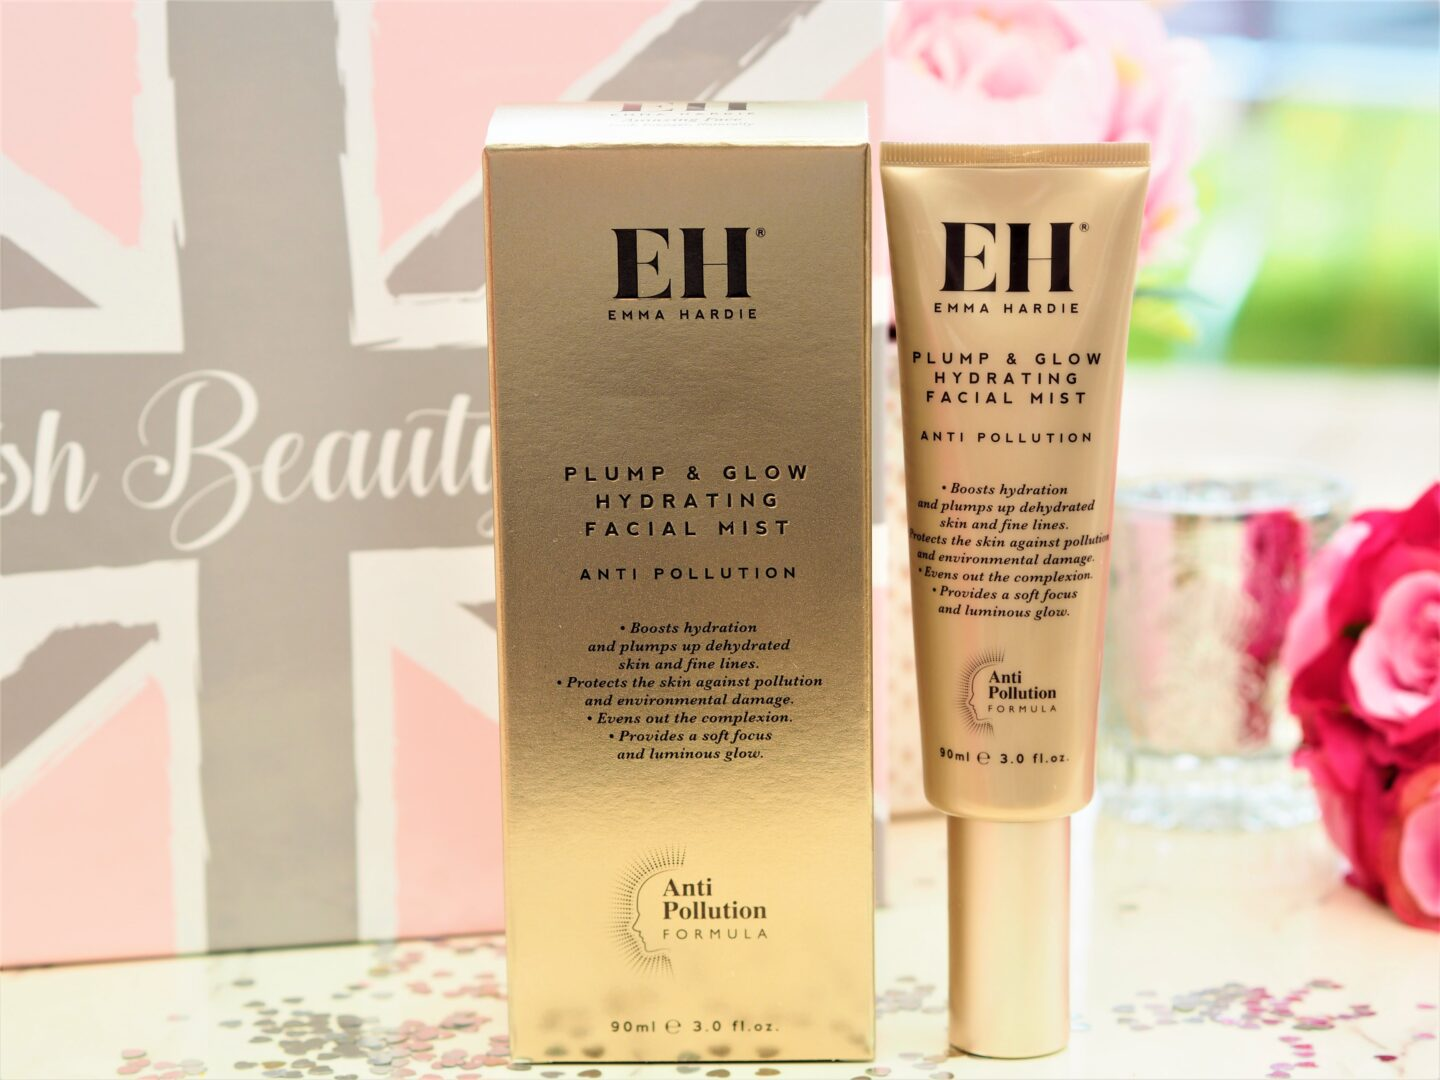 Emma Hardie Plump and Glow Hydrating Face Mist